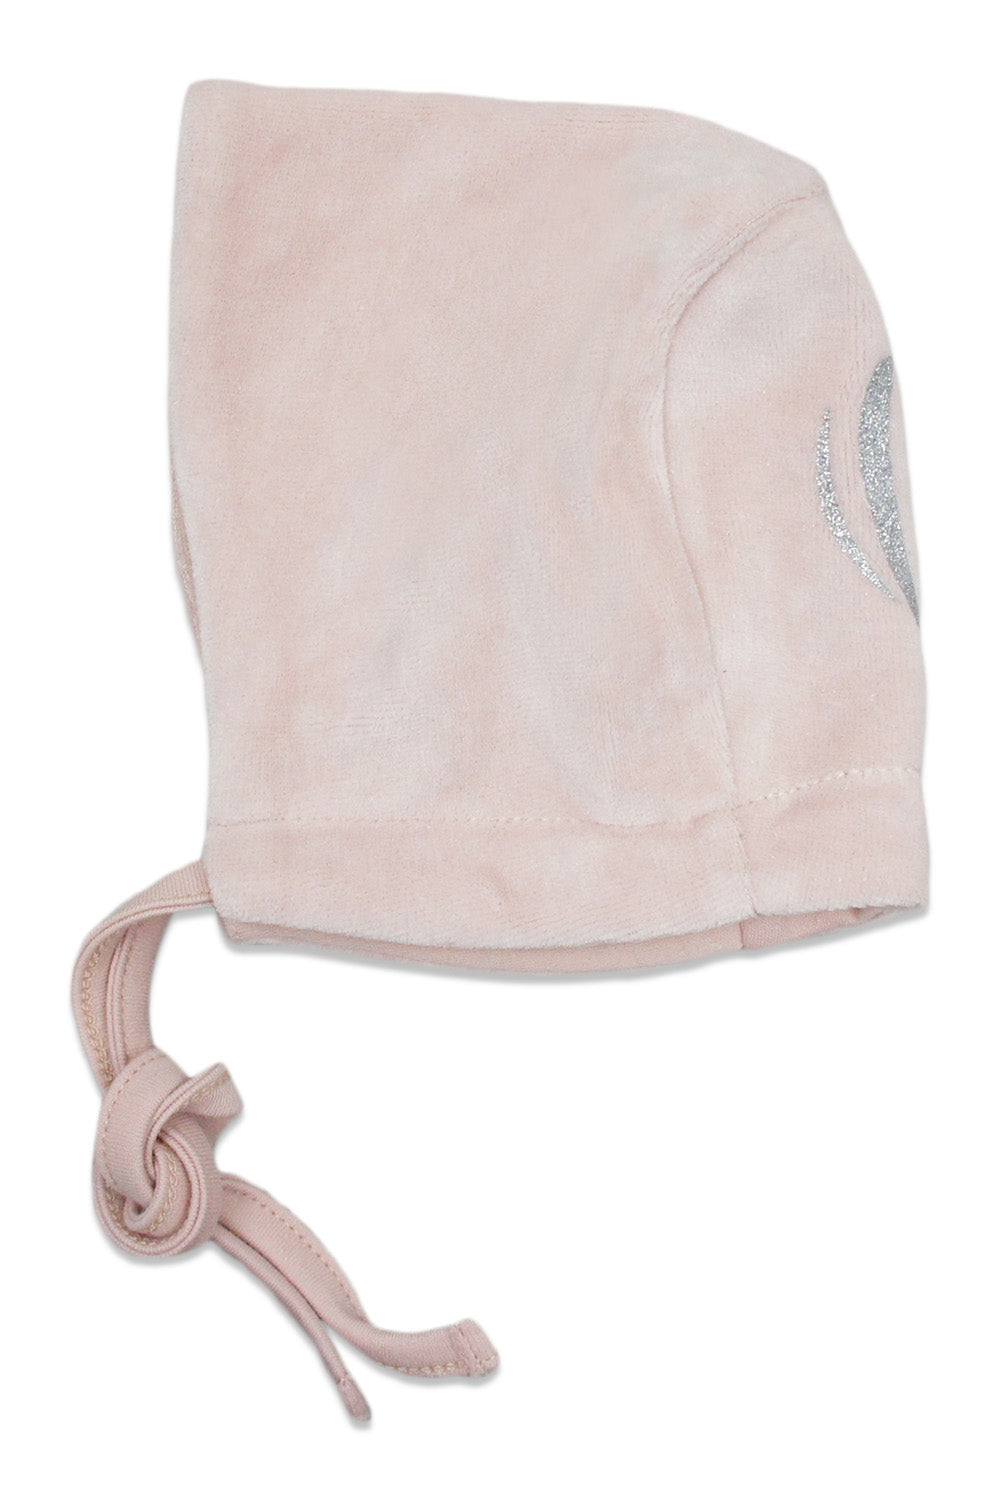 Chant De Joie Antique Pink Velour With Silver Bonnet